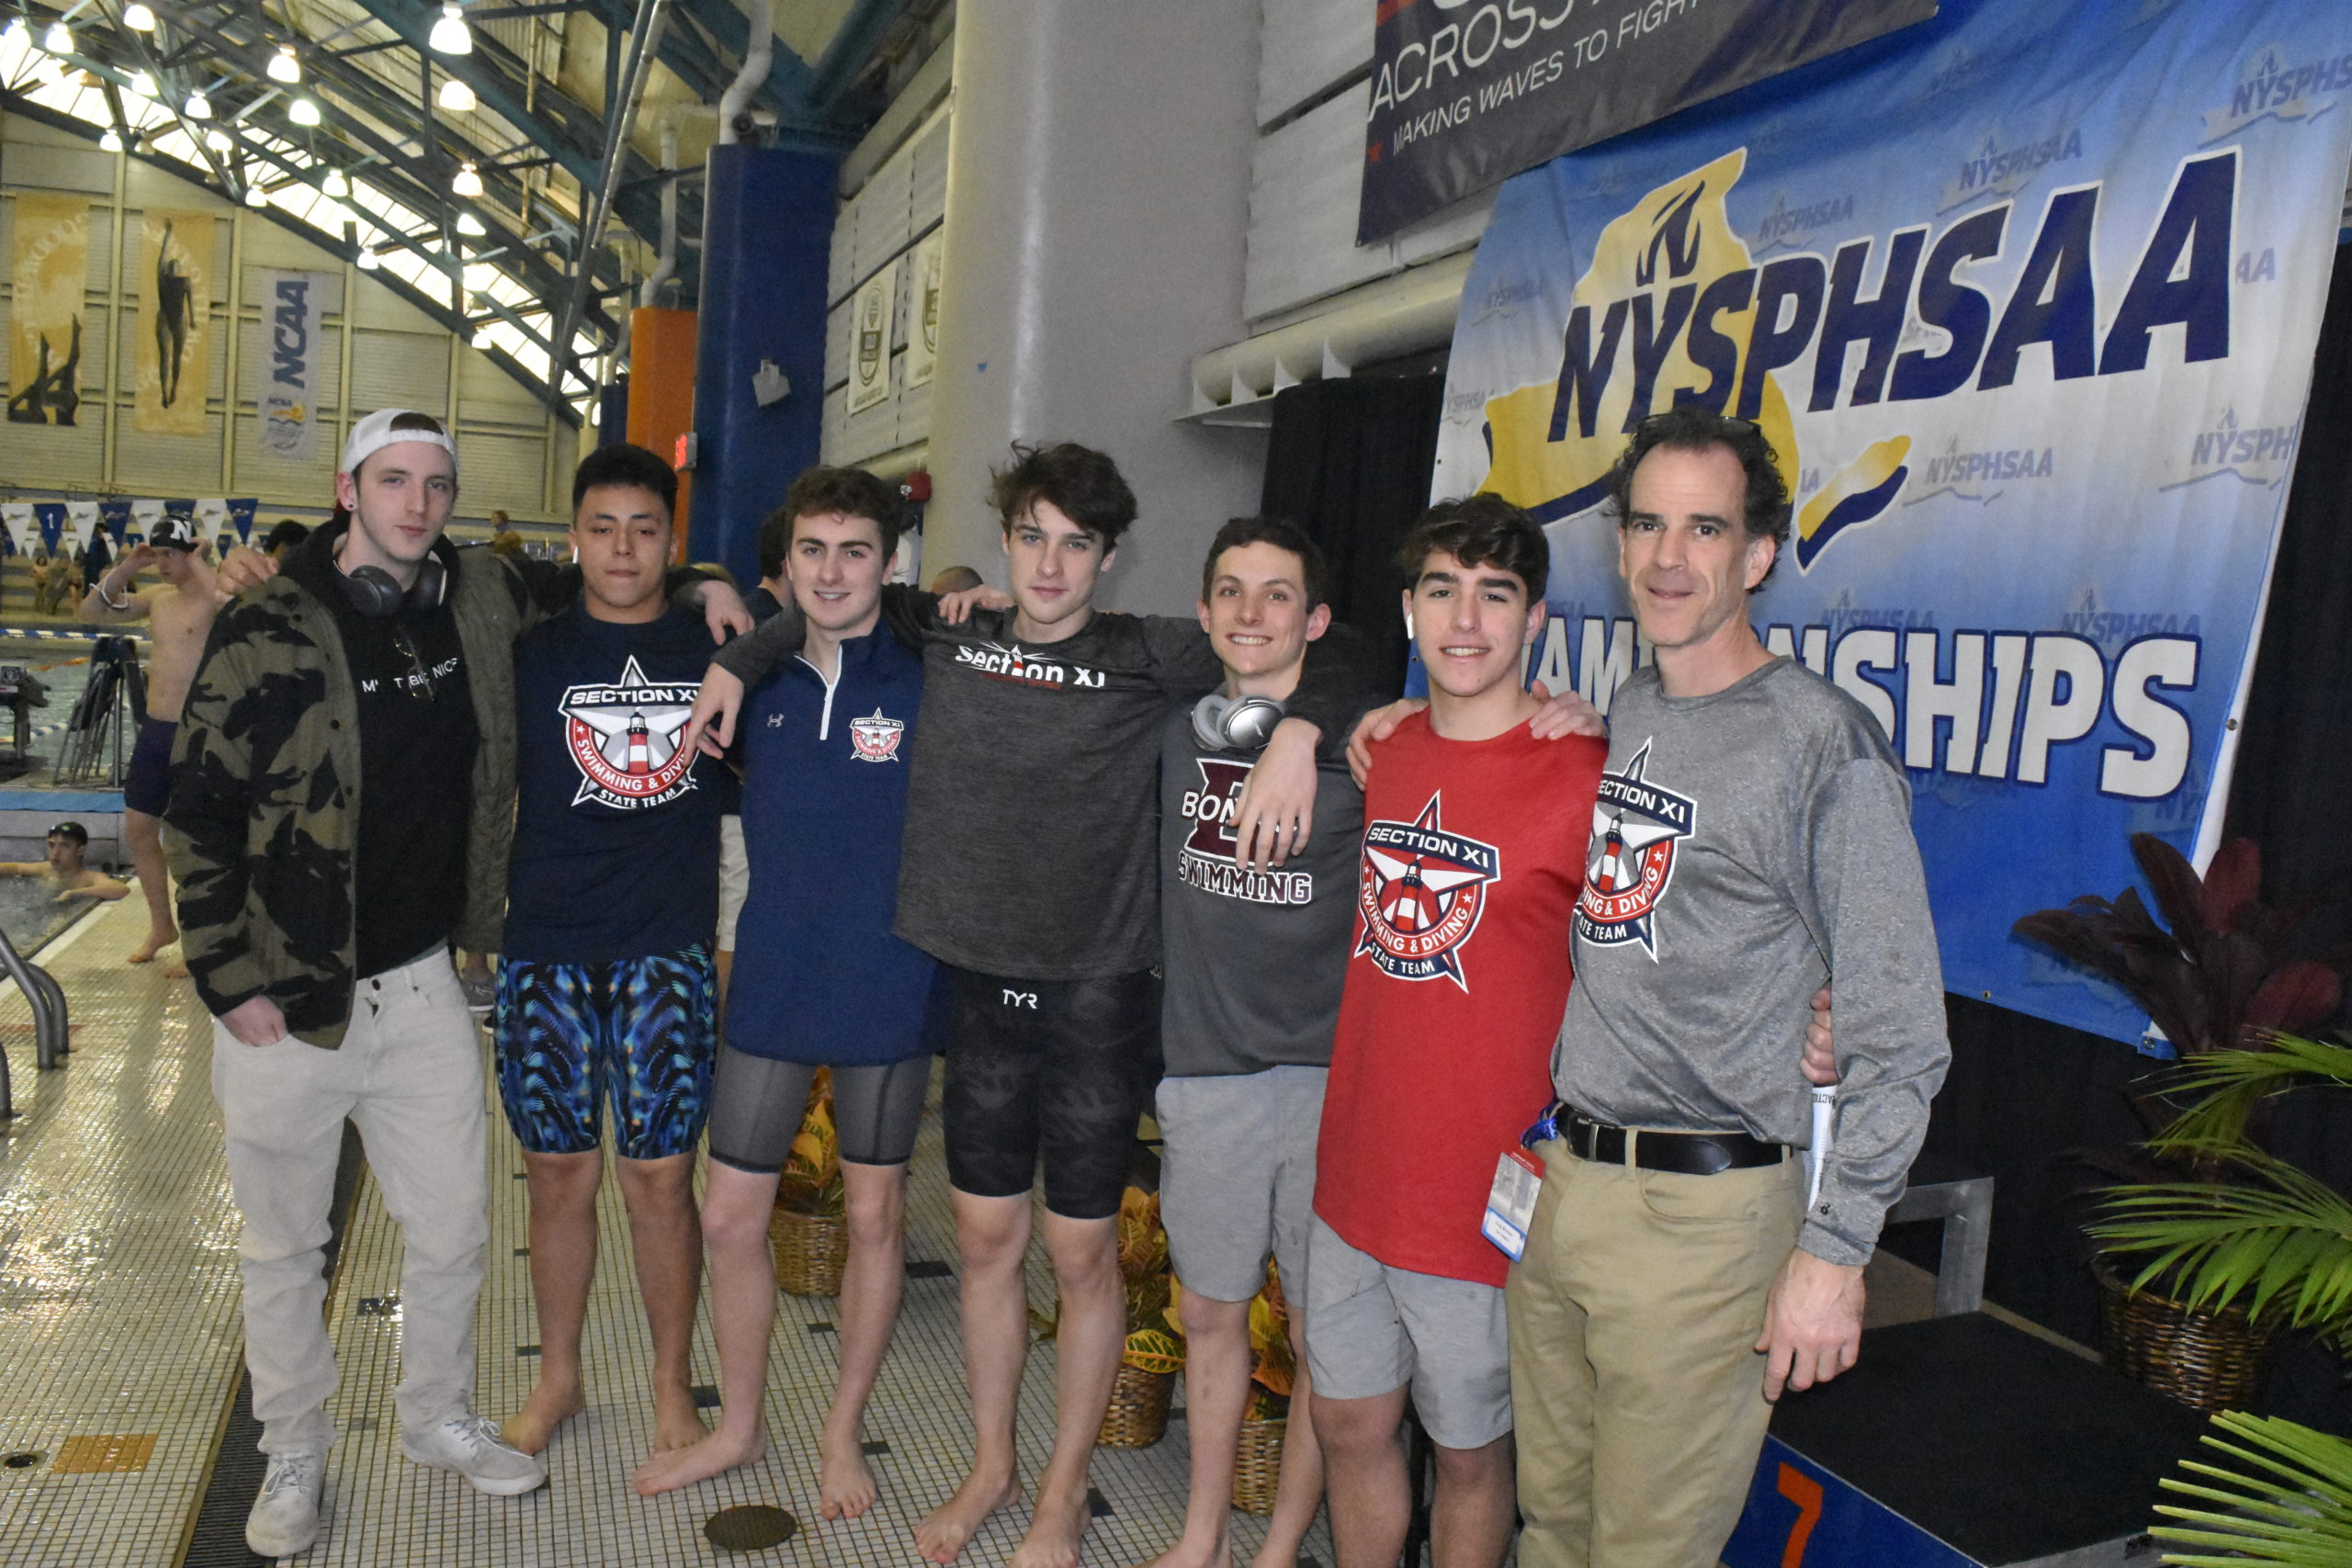 Bonackers, from left to right, Christian Gaines, Fernando Menjura, Owen McCormac, Colin Harrison, Jack Duryea, Aidan Forst and head coach Craig Brierley at the New York State Swimming Championships on Friday.  DREW BUDD